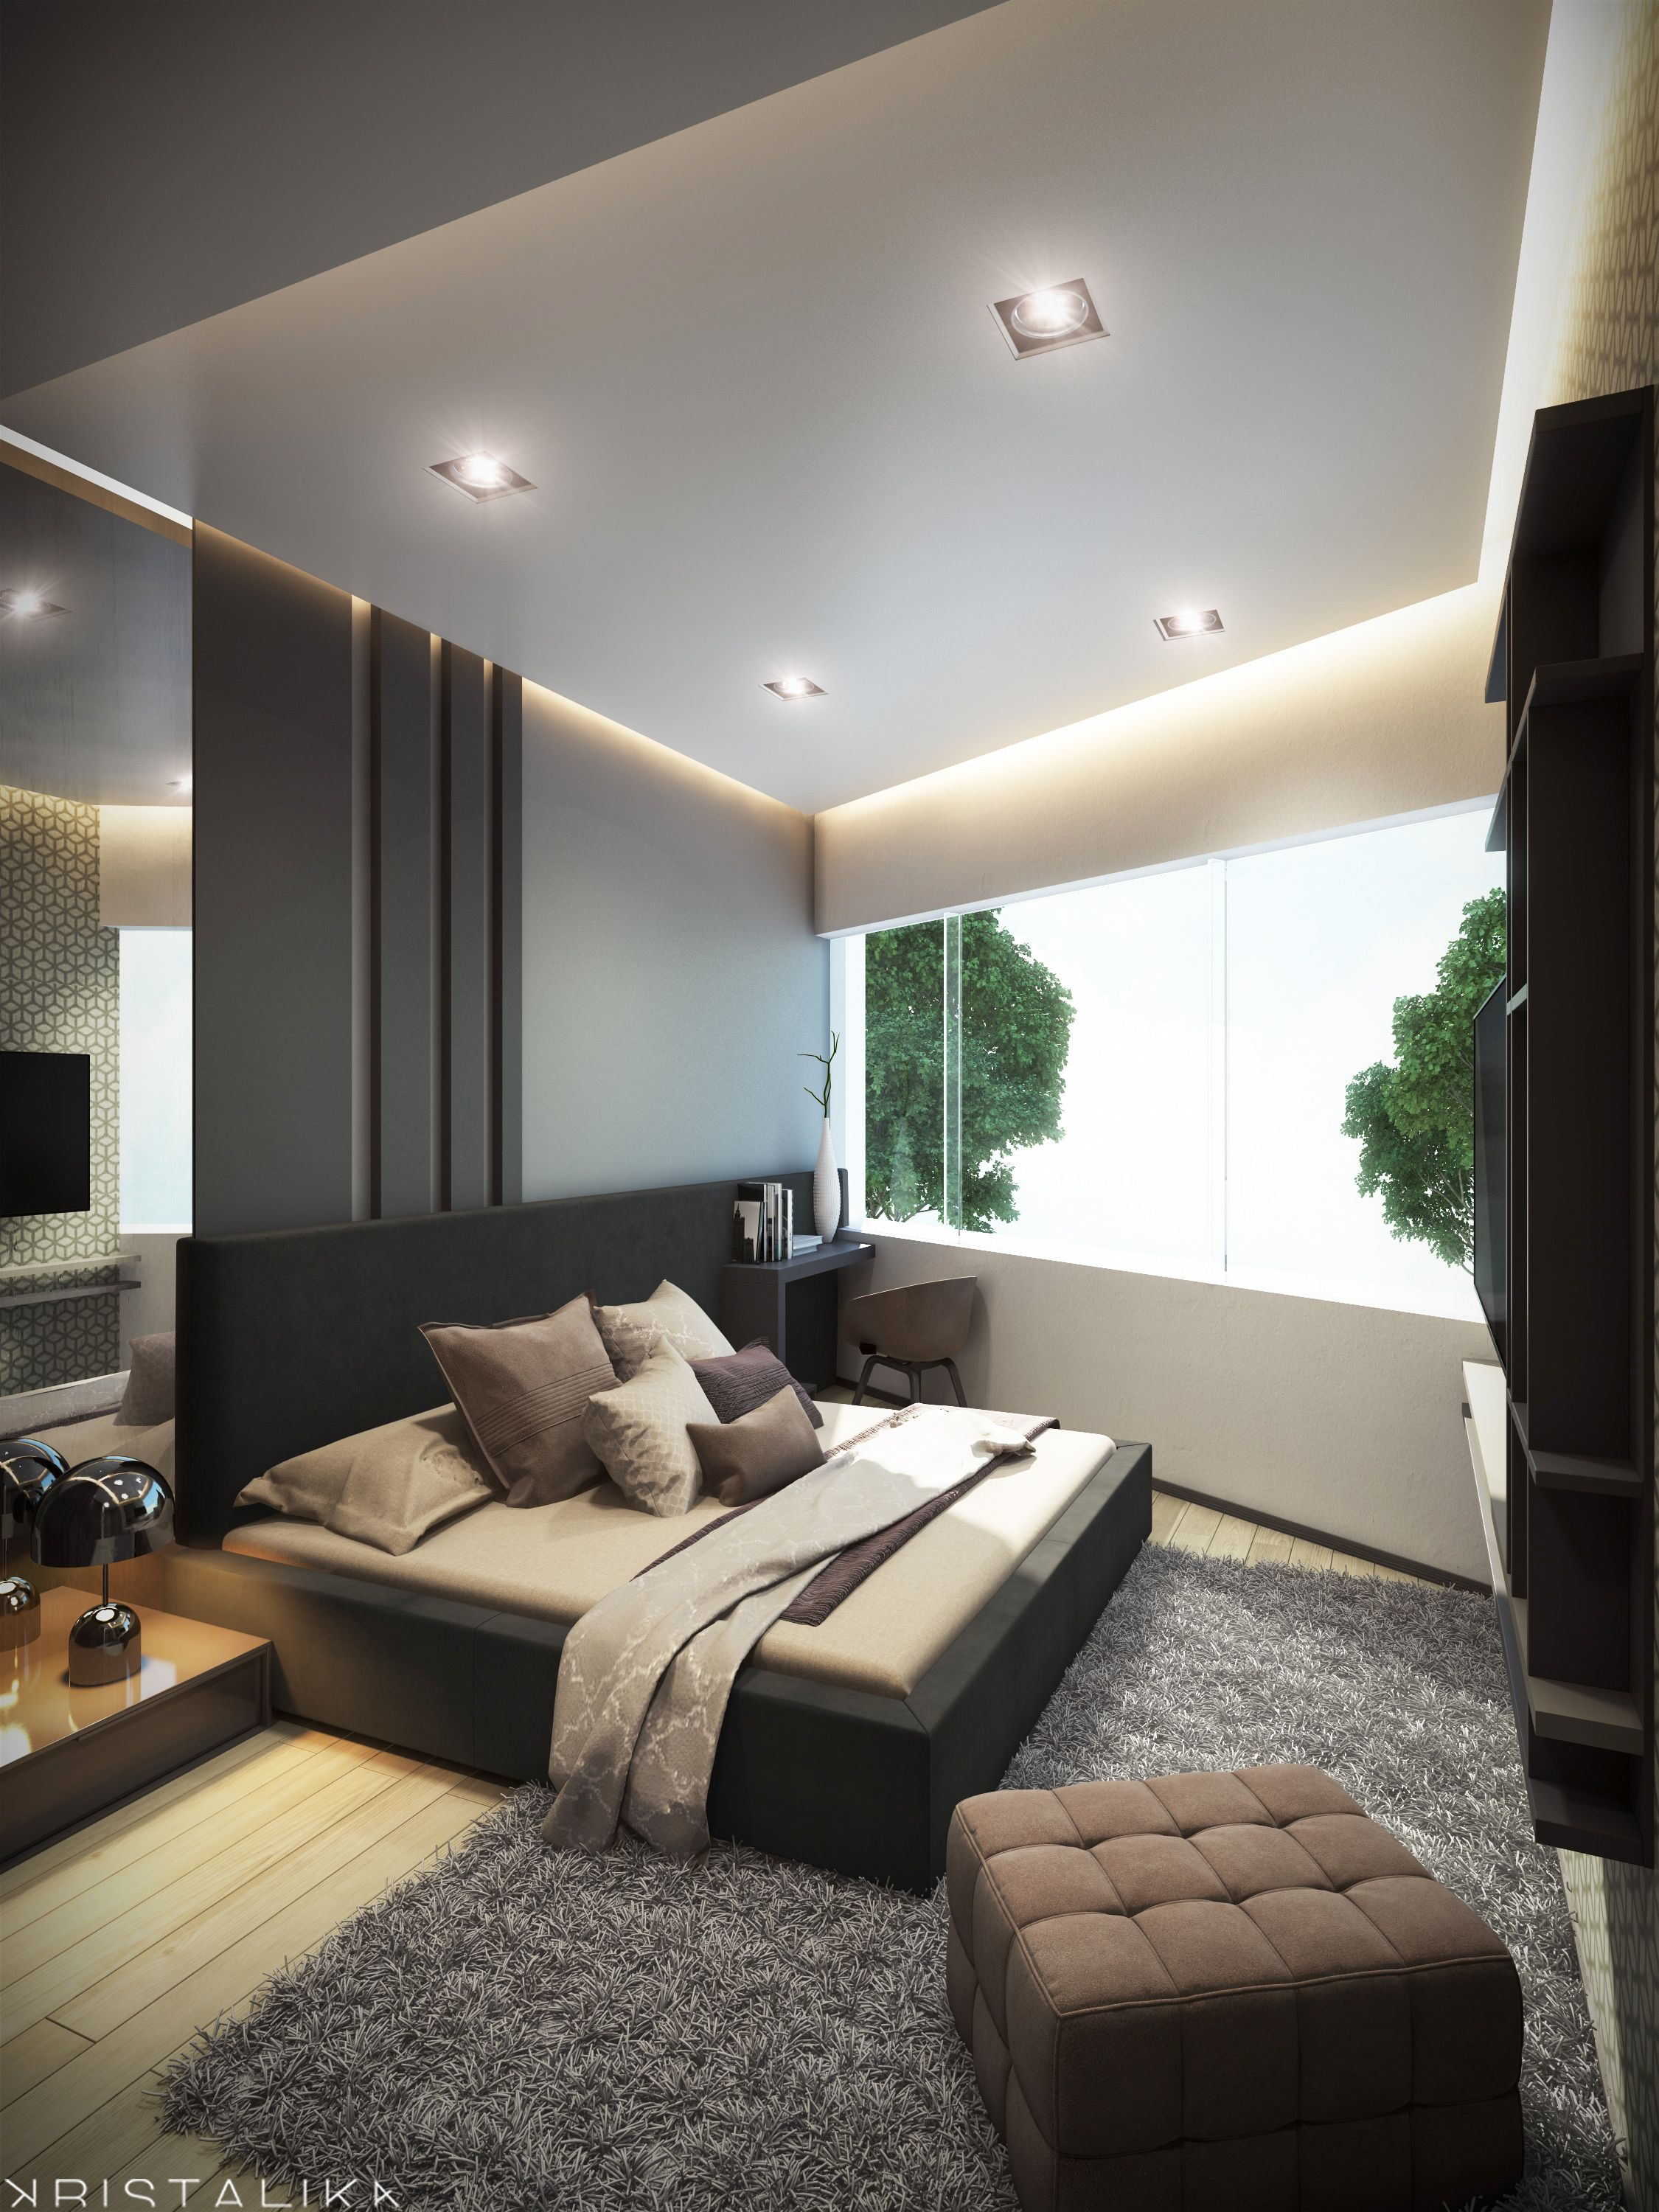 cmc house transitional bedroom design luxurious bedrooms on home interior design bedroom id=23232